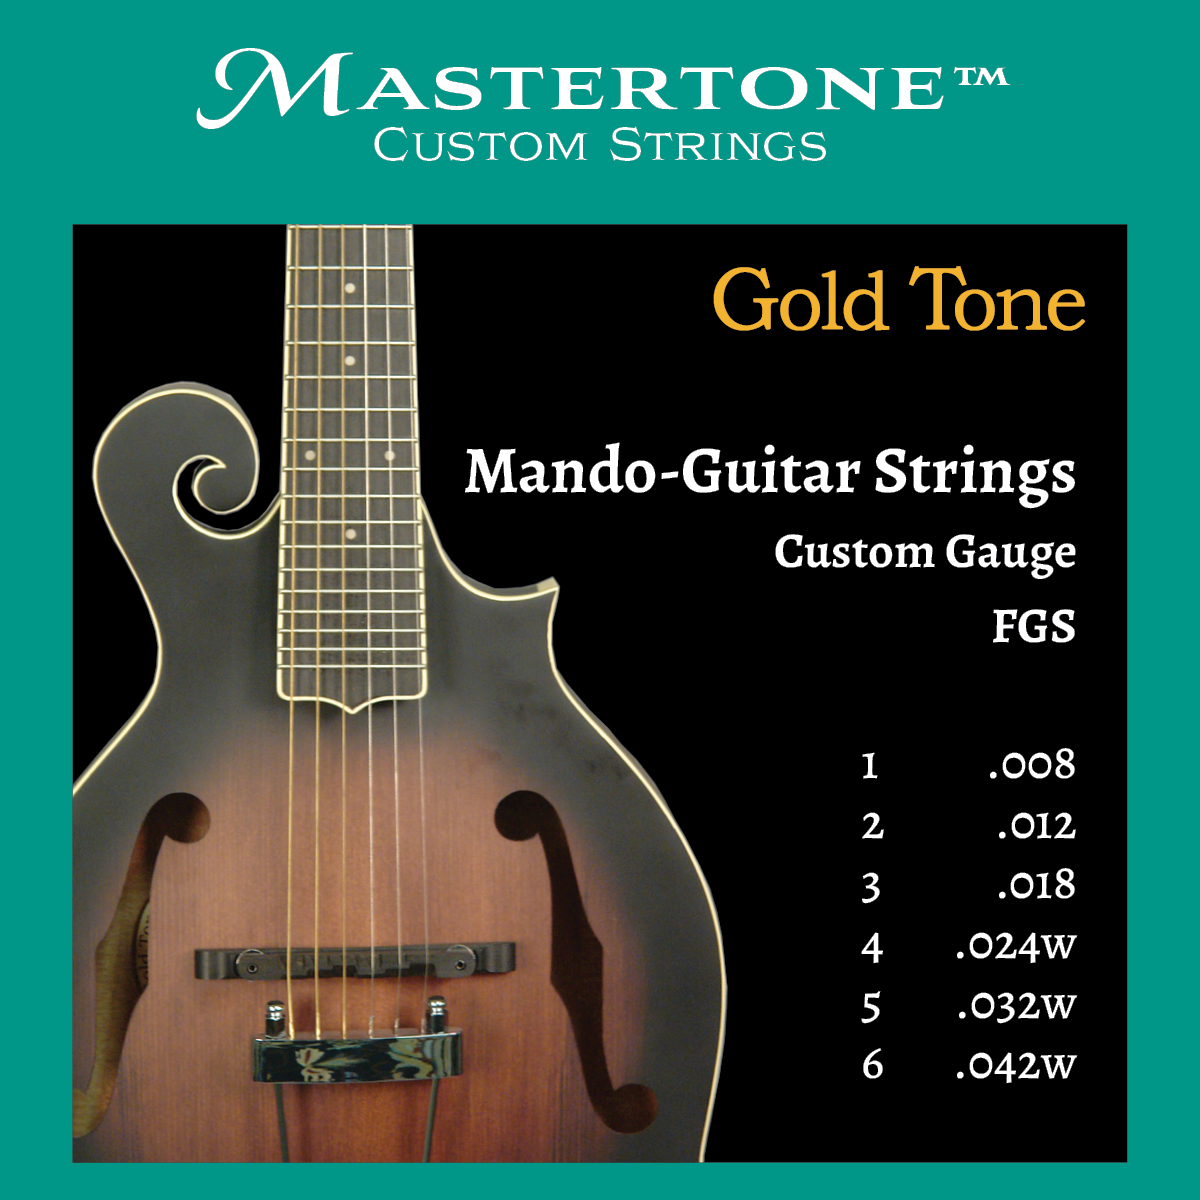 Mando-Guitar Custom Gauge Strings